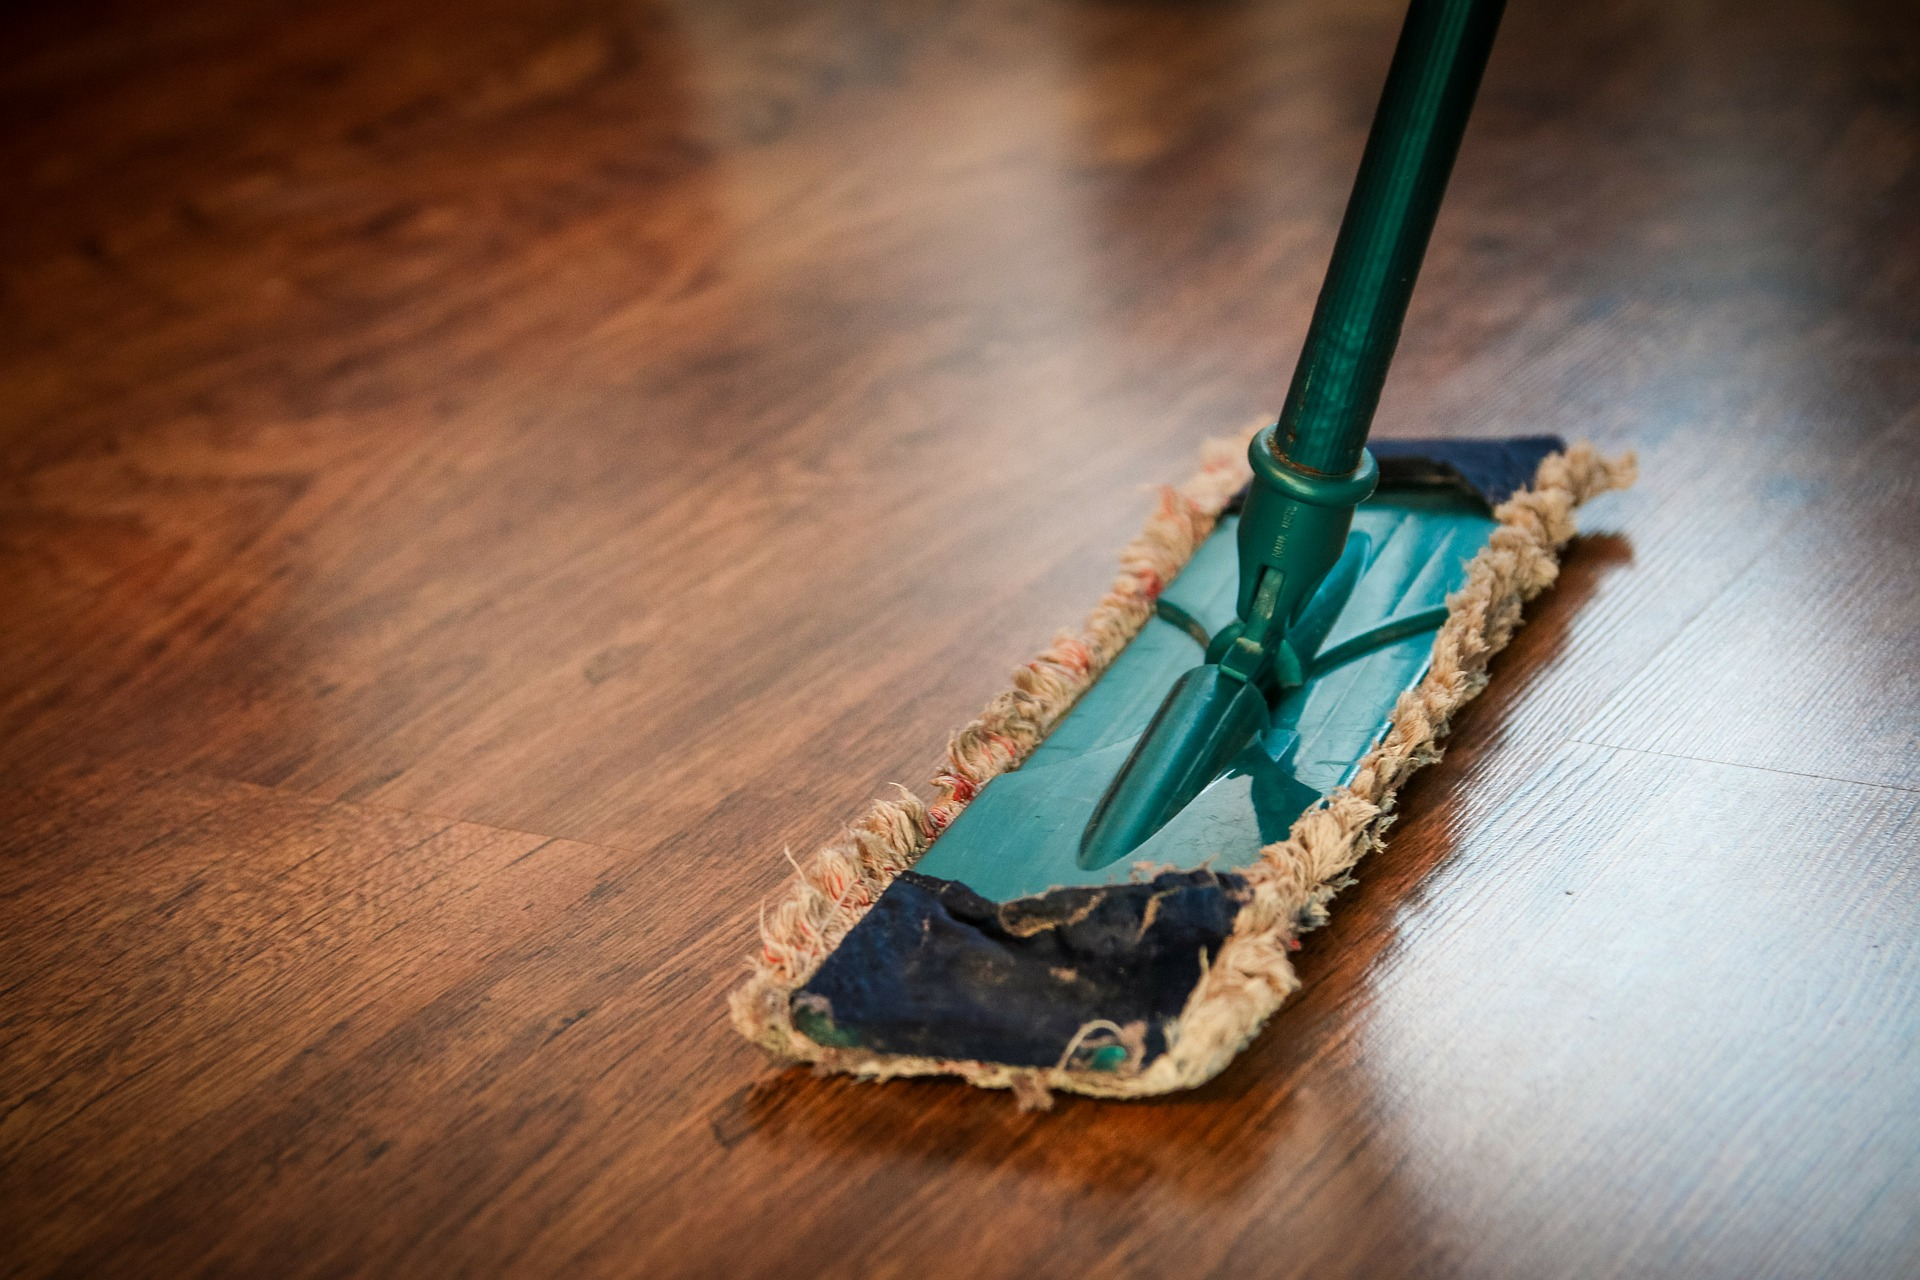 <p>Cleaning wooden floors</p>